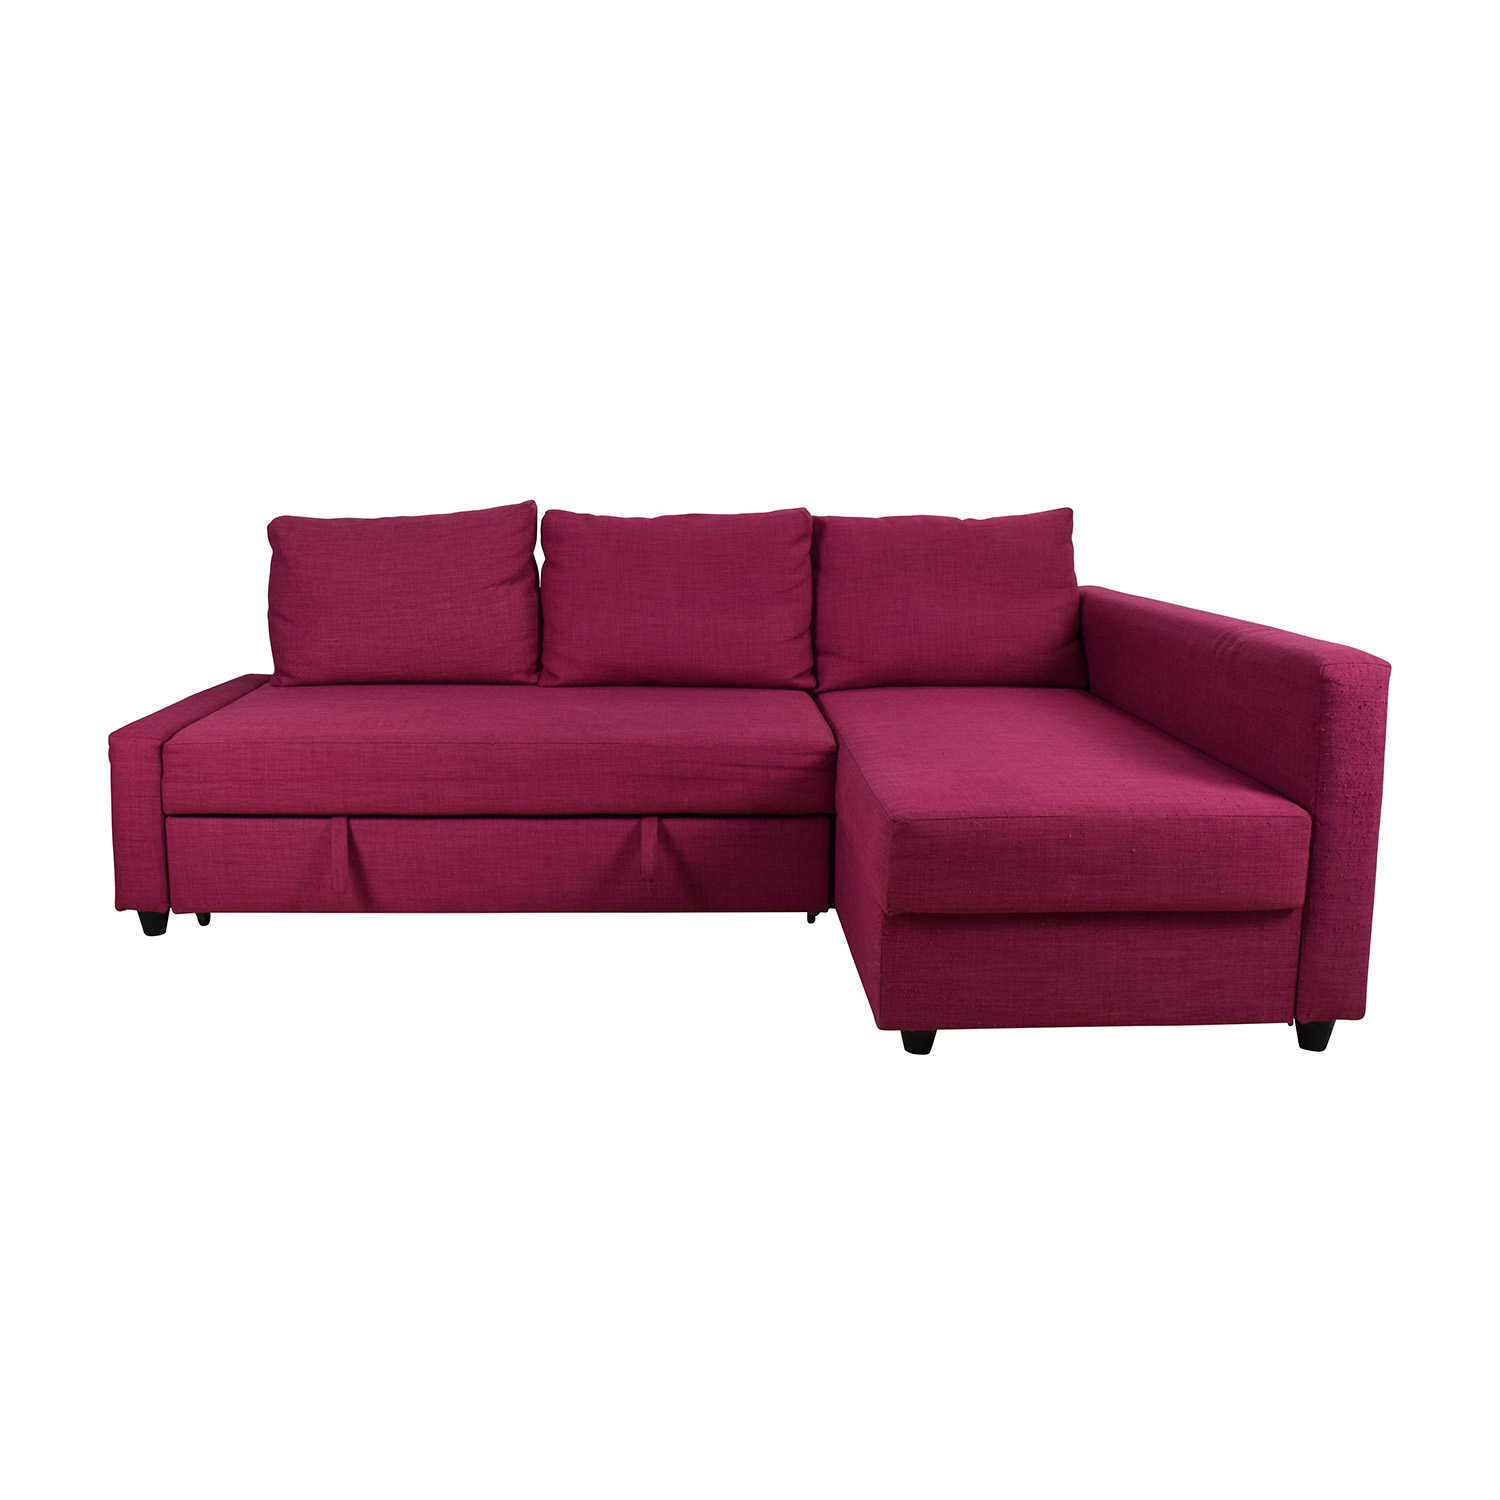 66 off ikea ikea friheten pink sleeper sofa sofas for Ikea divan